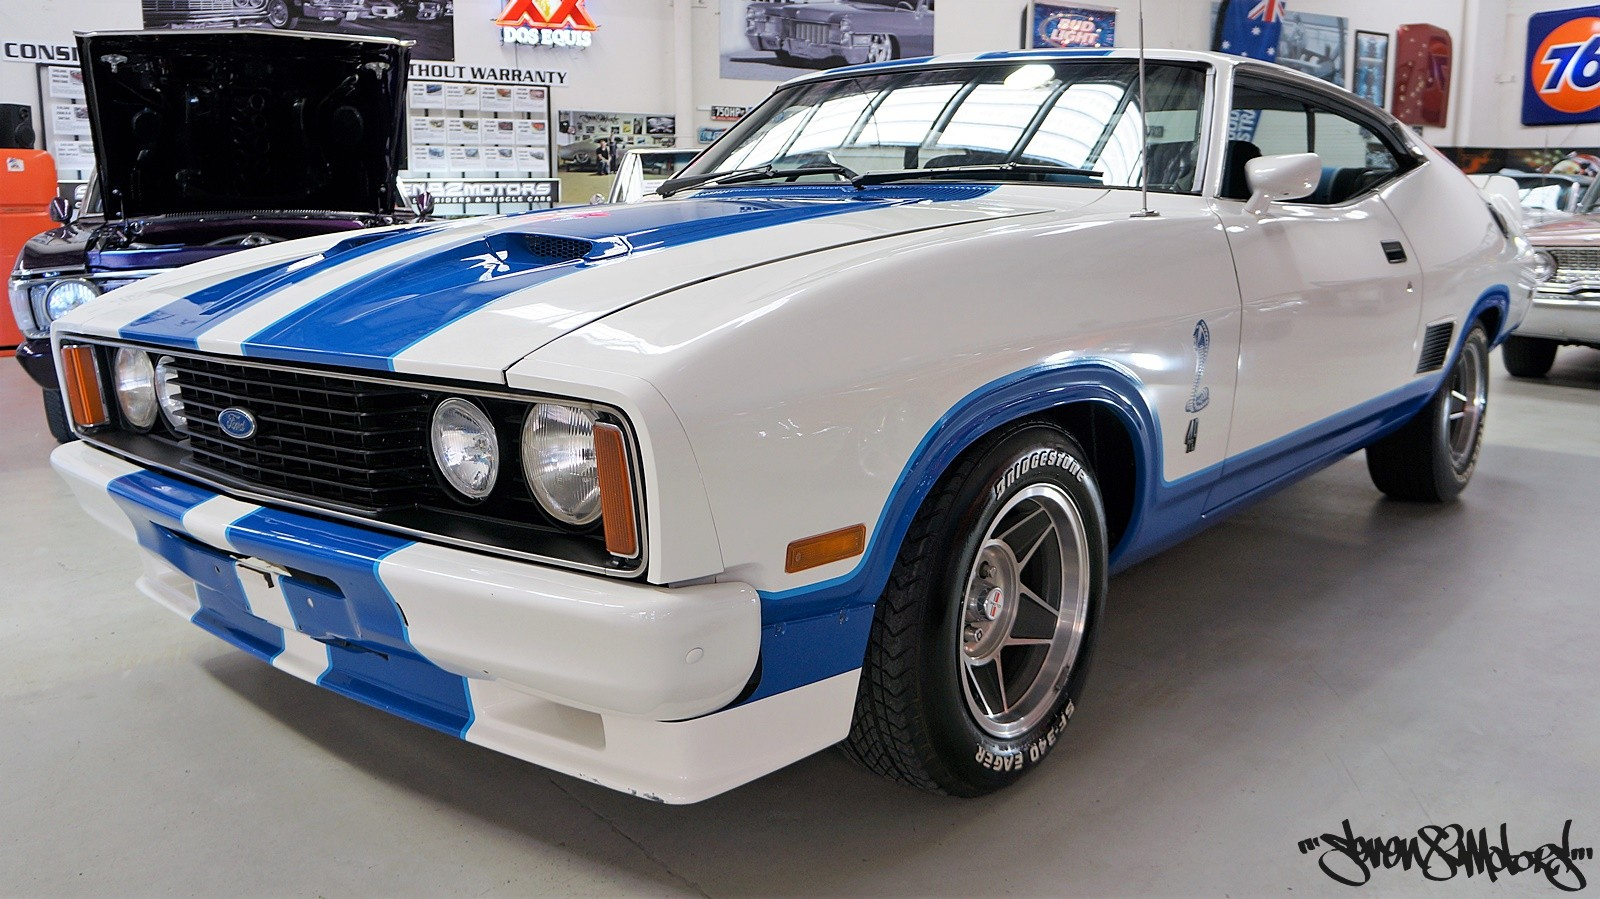 Us Auto Sales >> SOLD! 1978 XC Falcon Cobra Hardtop - SEVEN82MOTORS